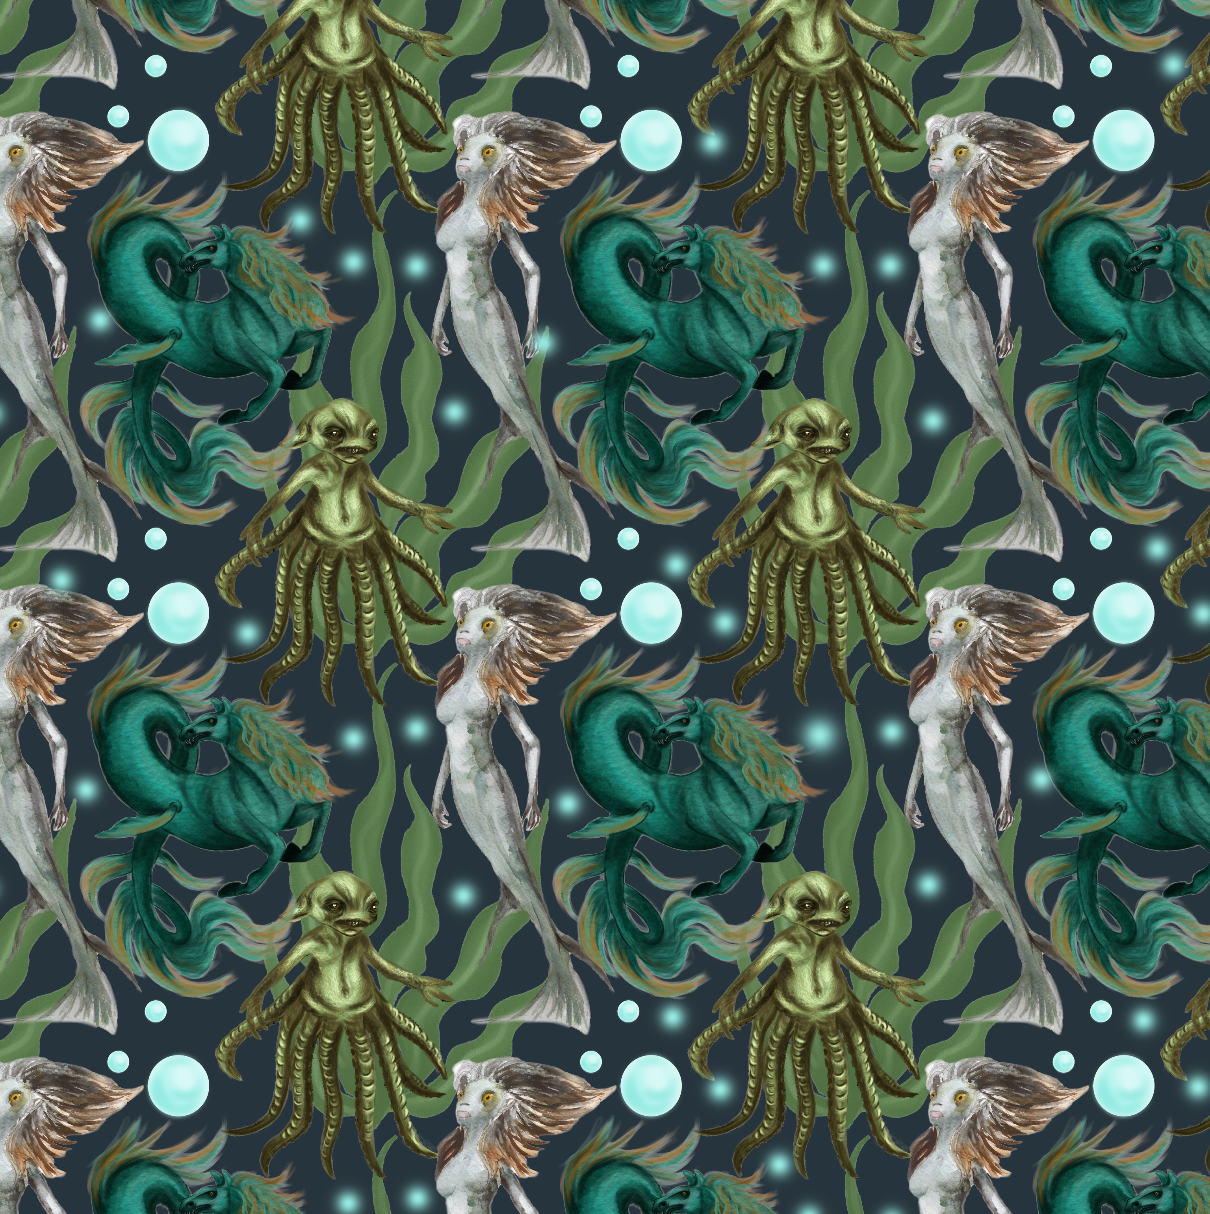 PRE ORDER - Fantastic Beasts in Green - Digital Fabric Print